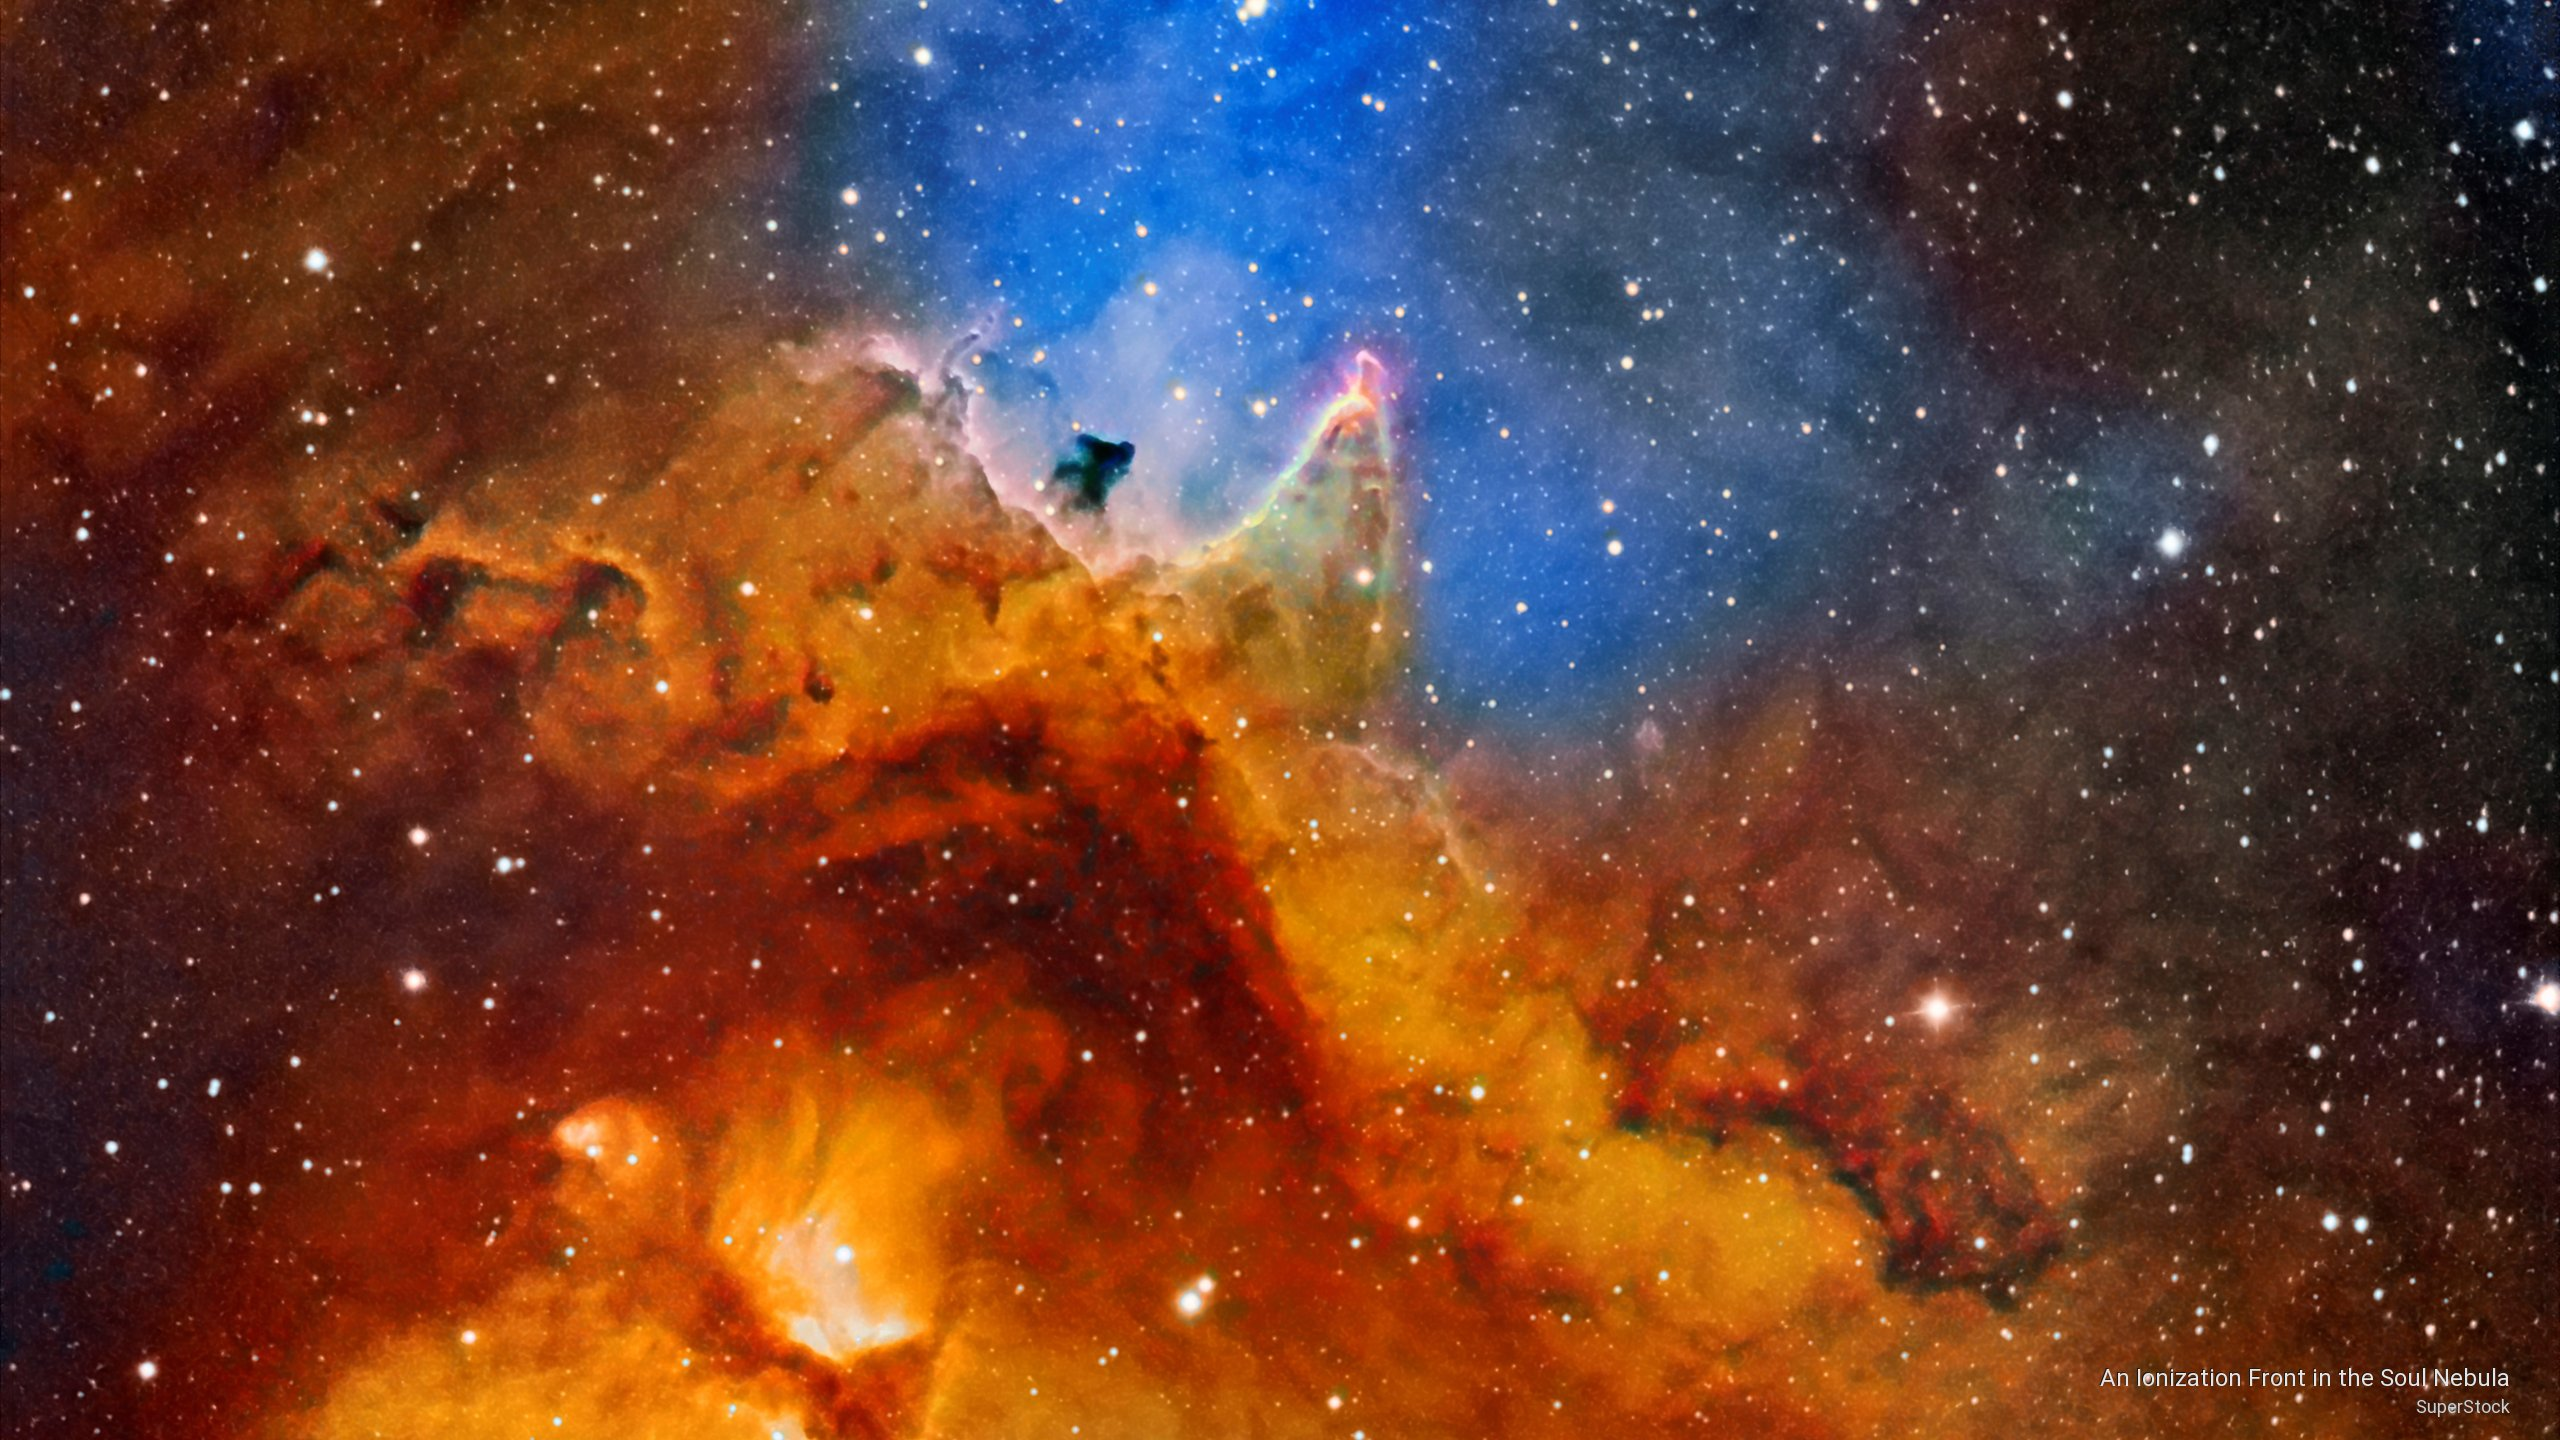 An Ionization Front in the Soul Nebula